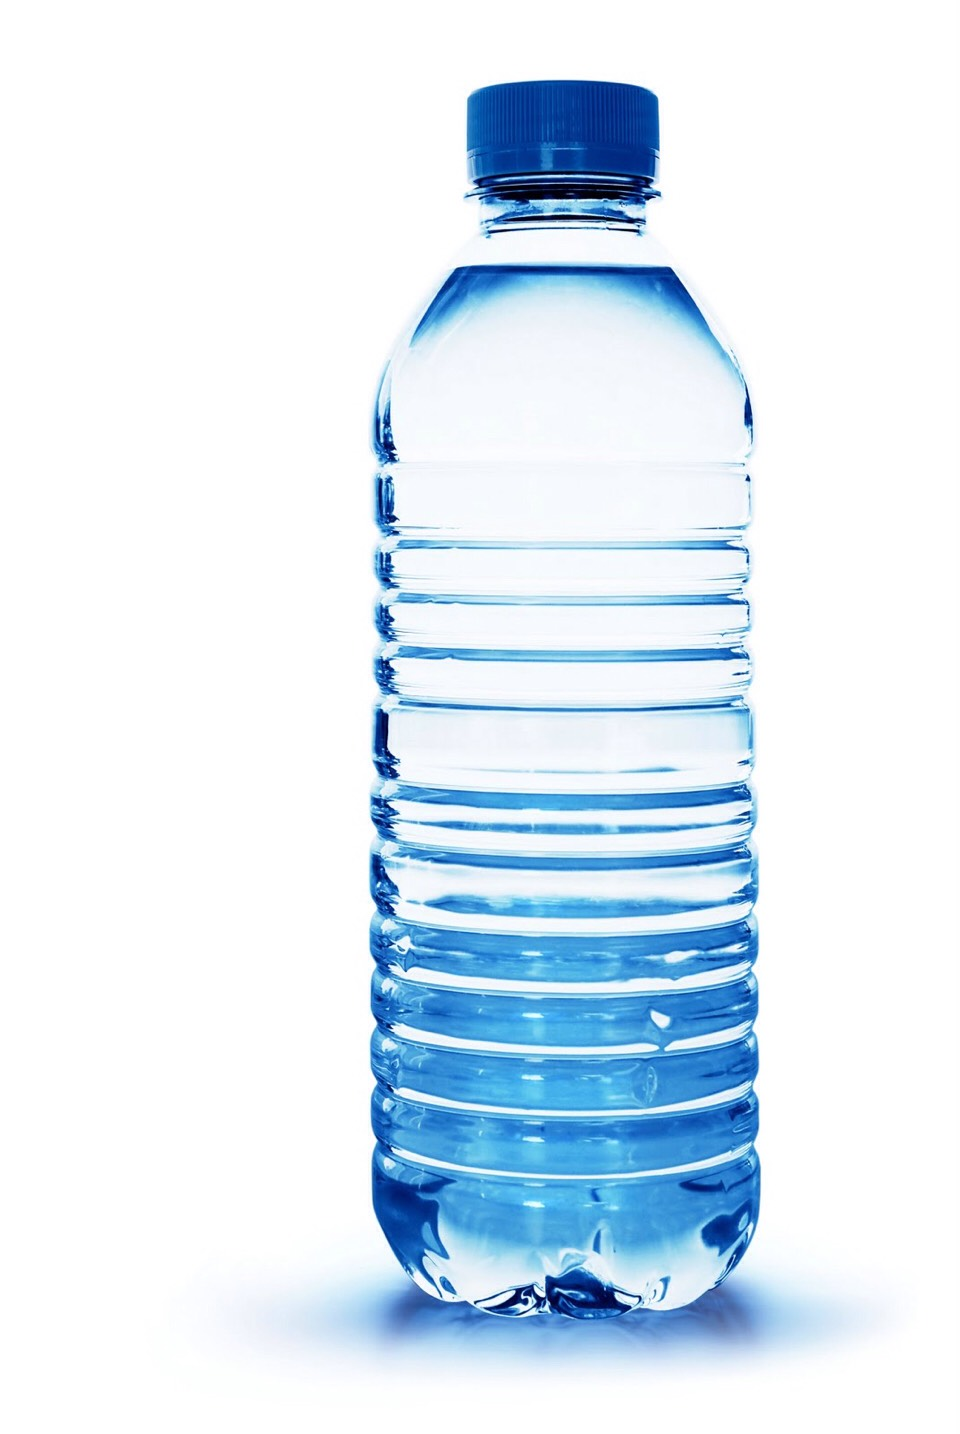 Drink water before each meal so you can feel full but eat less